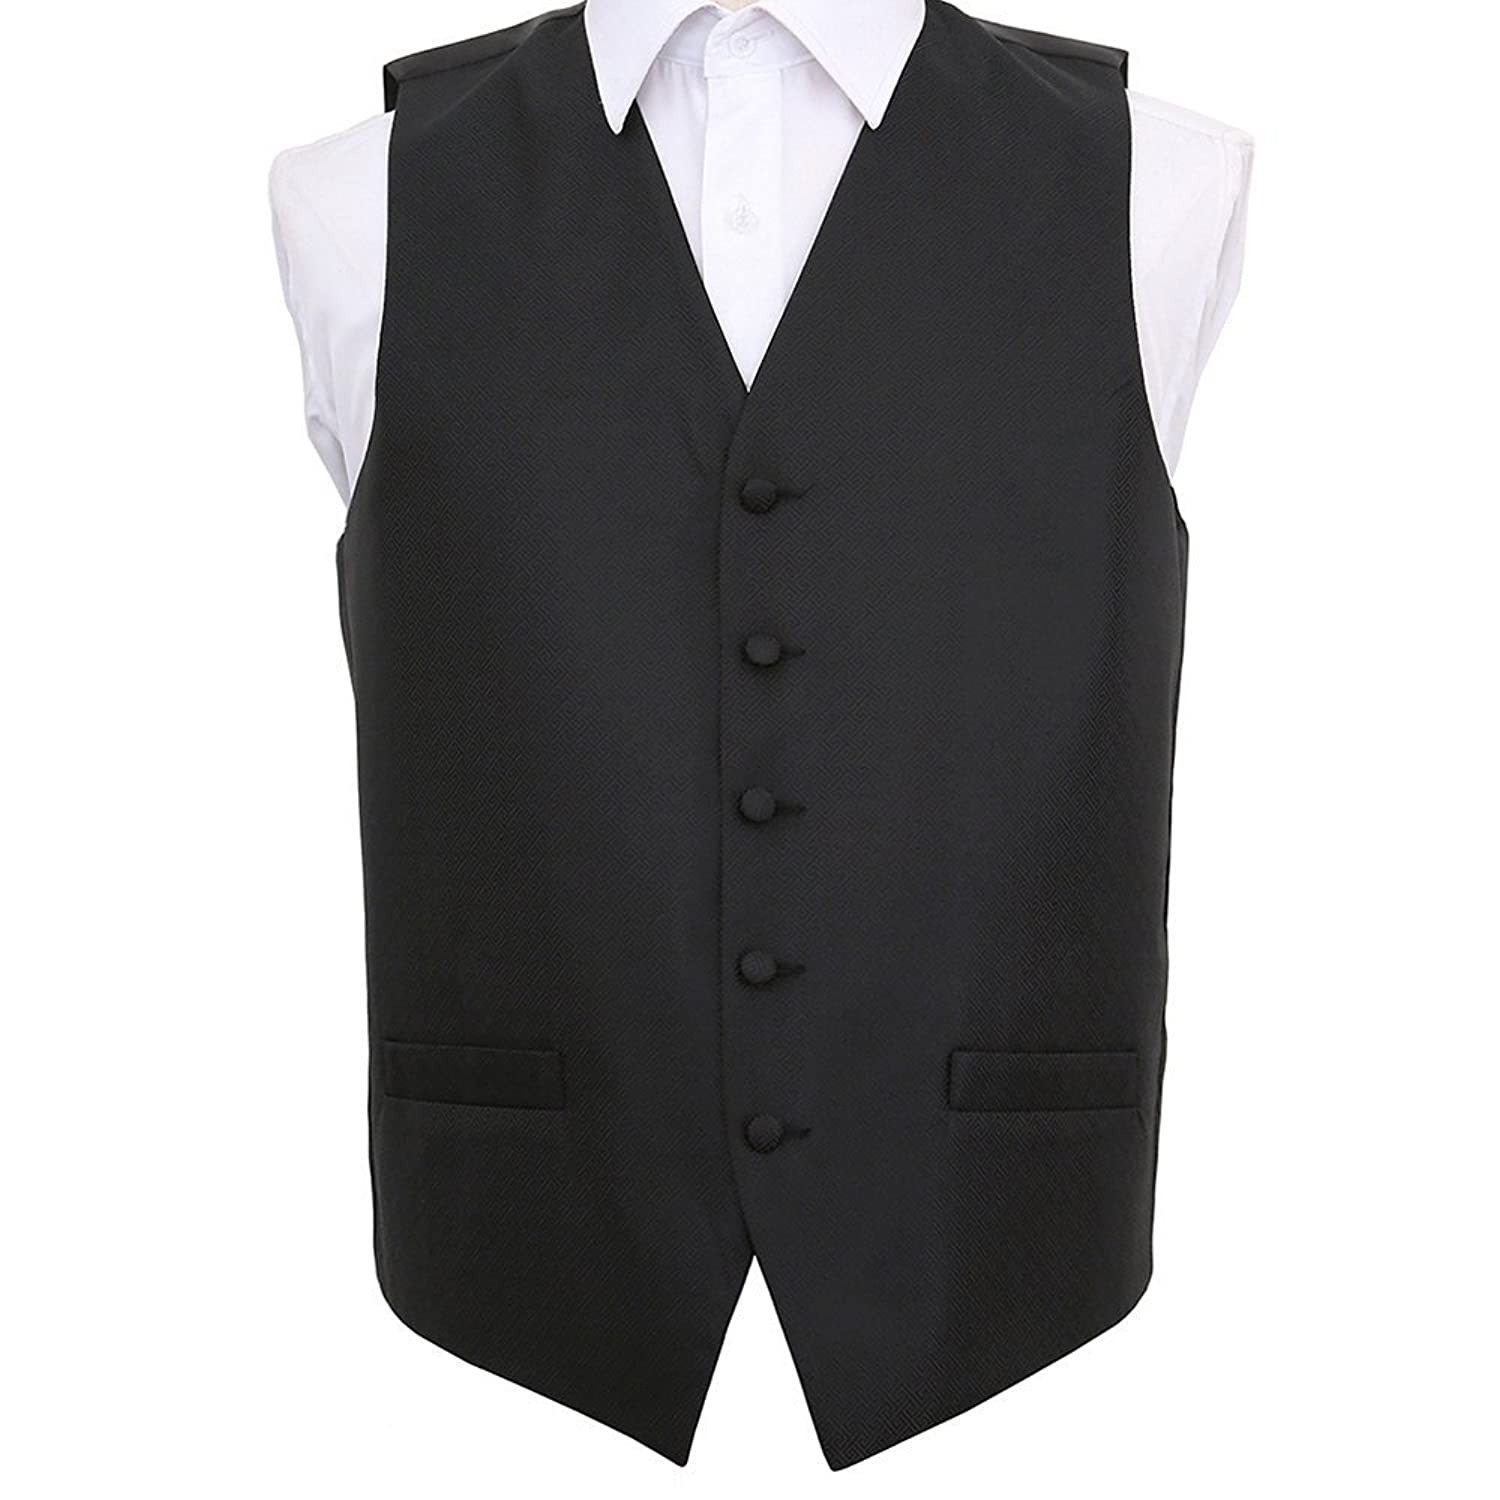 DQT Woven Swirl Patterned Black /& Blue Formal Mens Wedding Waistcoat S-5XL